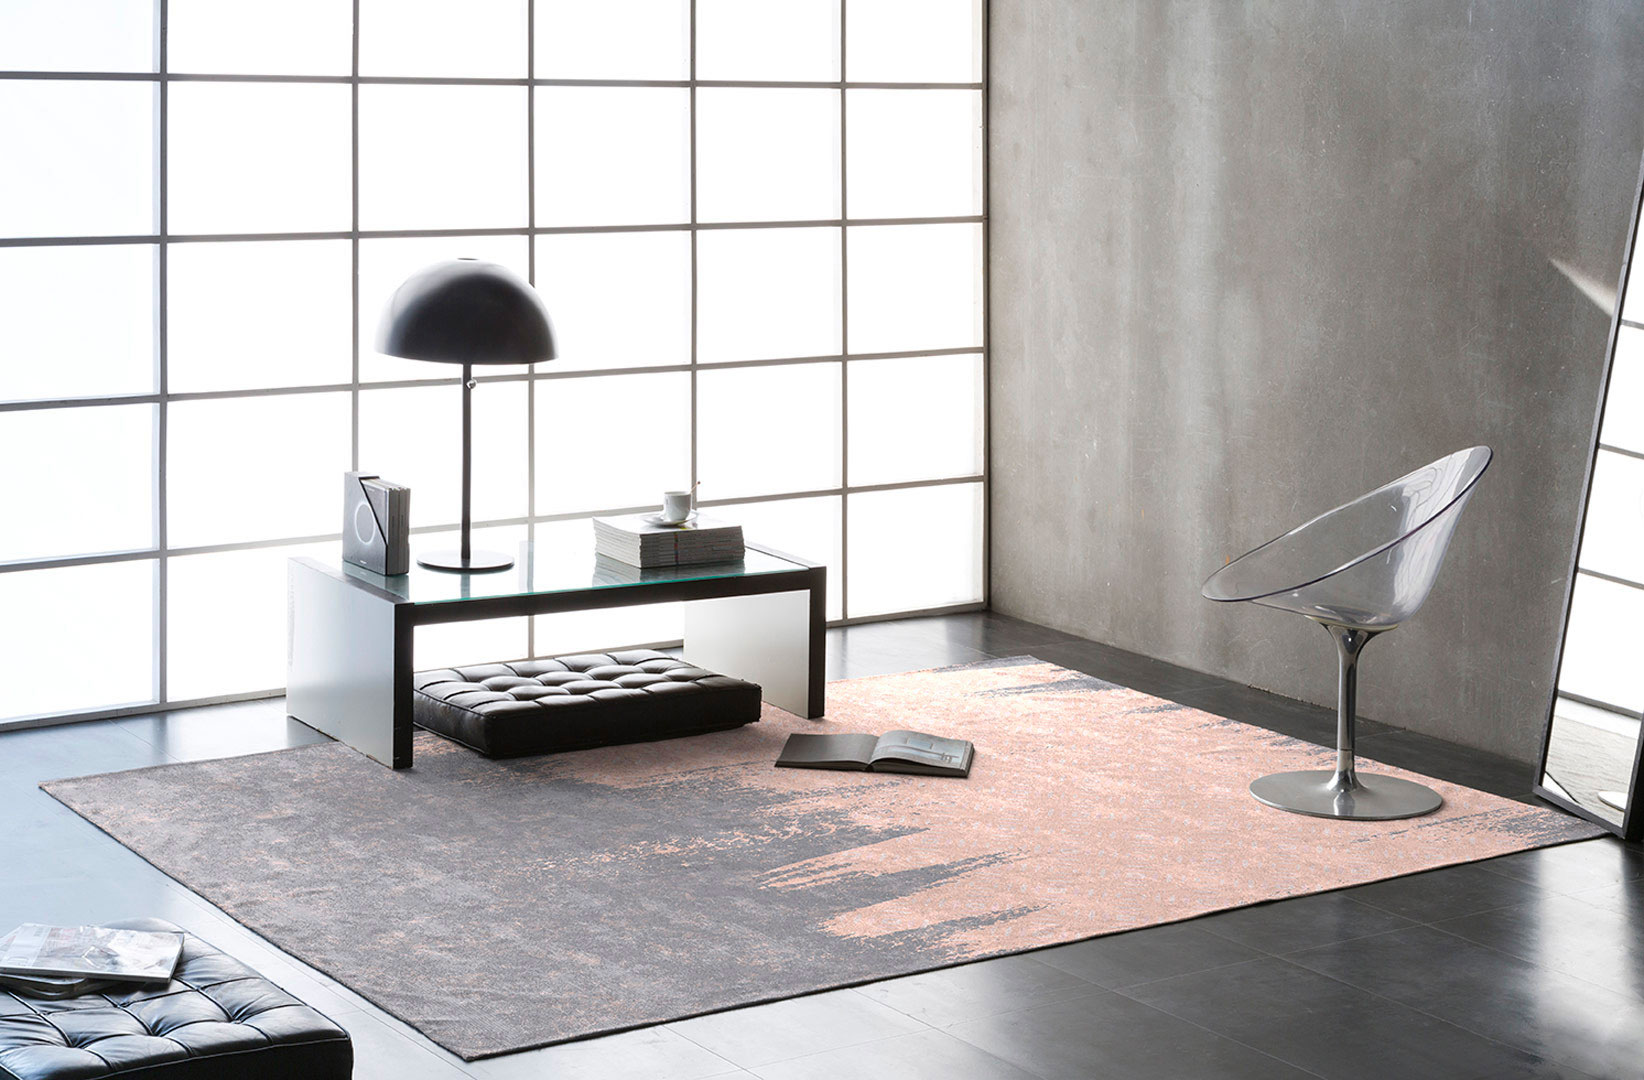 Comment Laver Un Tapis De Salon comment nettoyer son tapis ? - le magazine allotapis : tapis